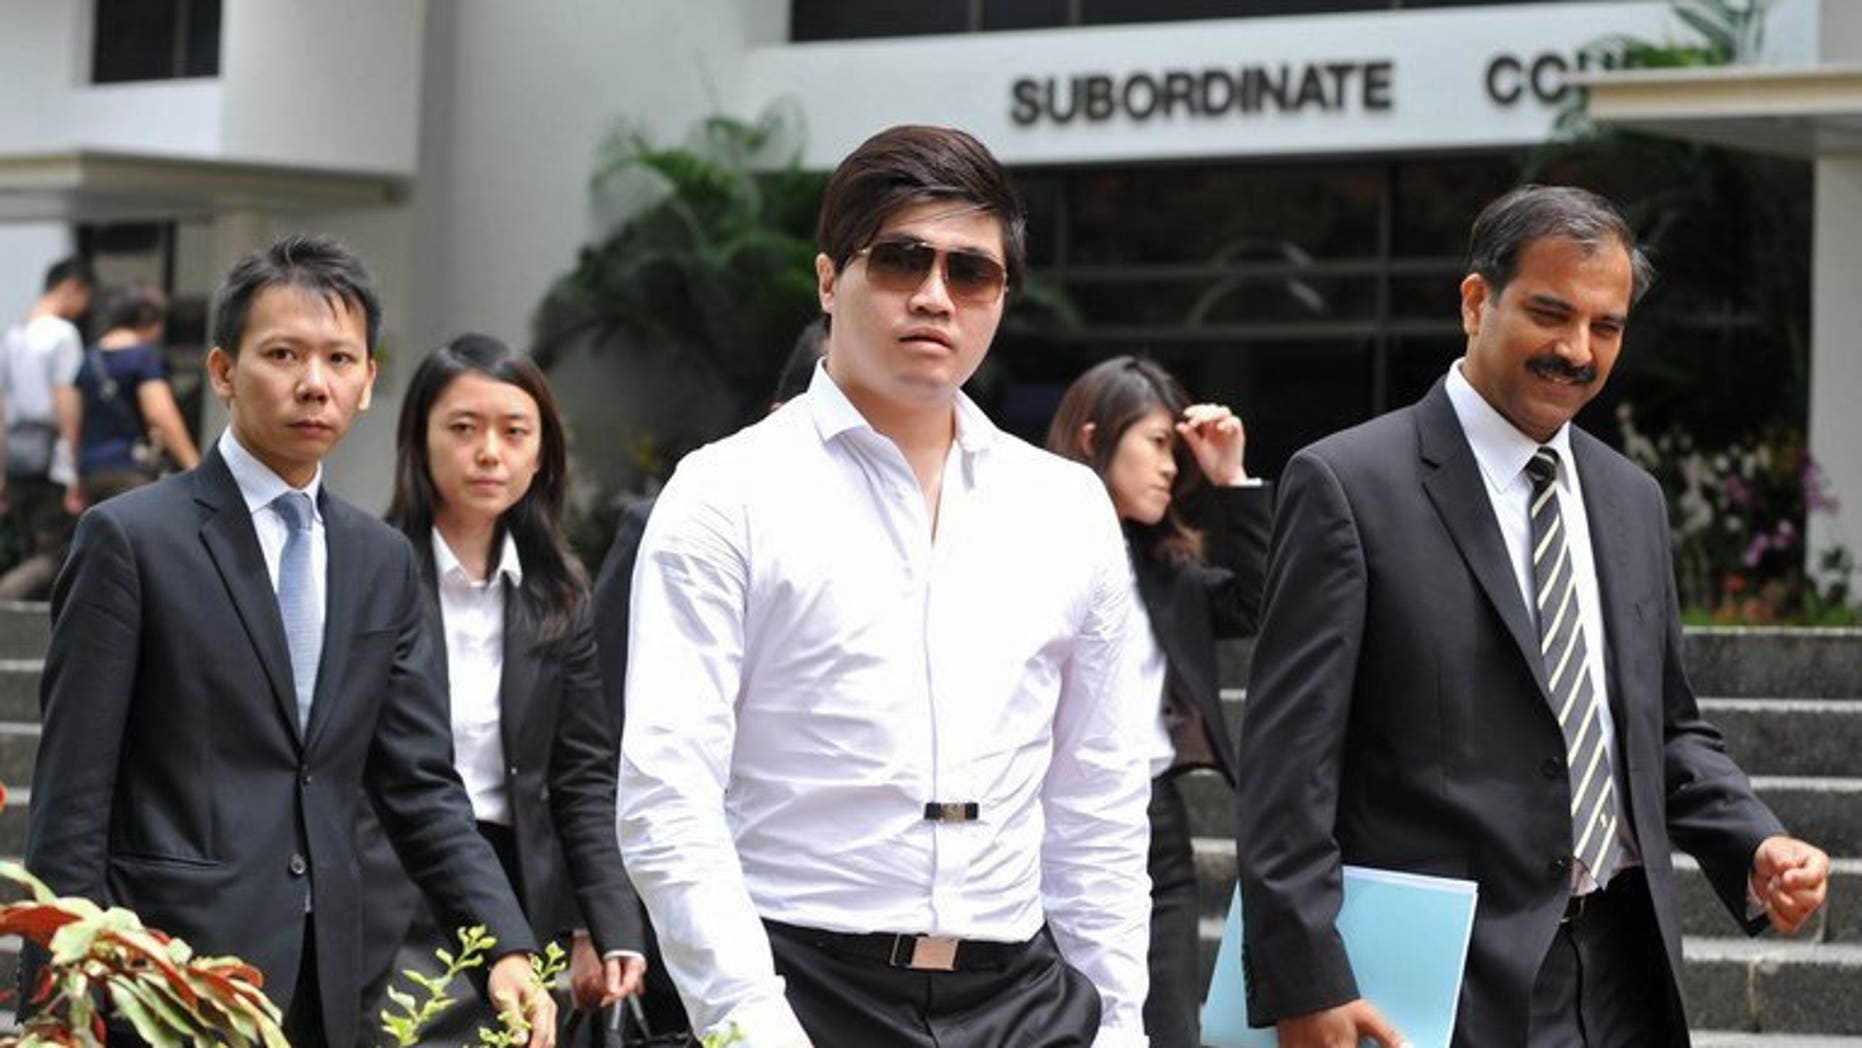 Businessman Eric Ding Si Yang (centre) leaves the district court in Singapore, on July 15, 2013. A Lebanese referee expected to be a key prosecution witness in the match-fixing trial of Ding, has admitted that the 31-year-old businessman had never asked him to rig a game.